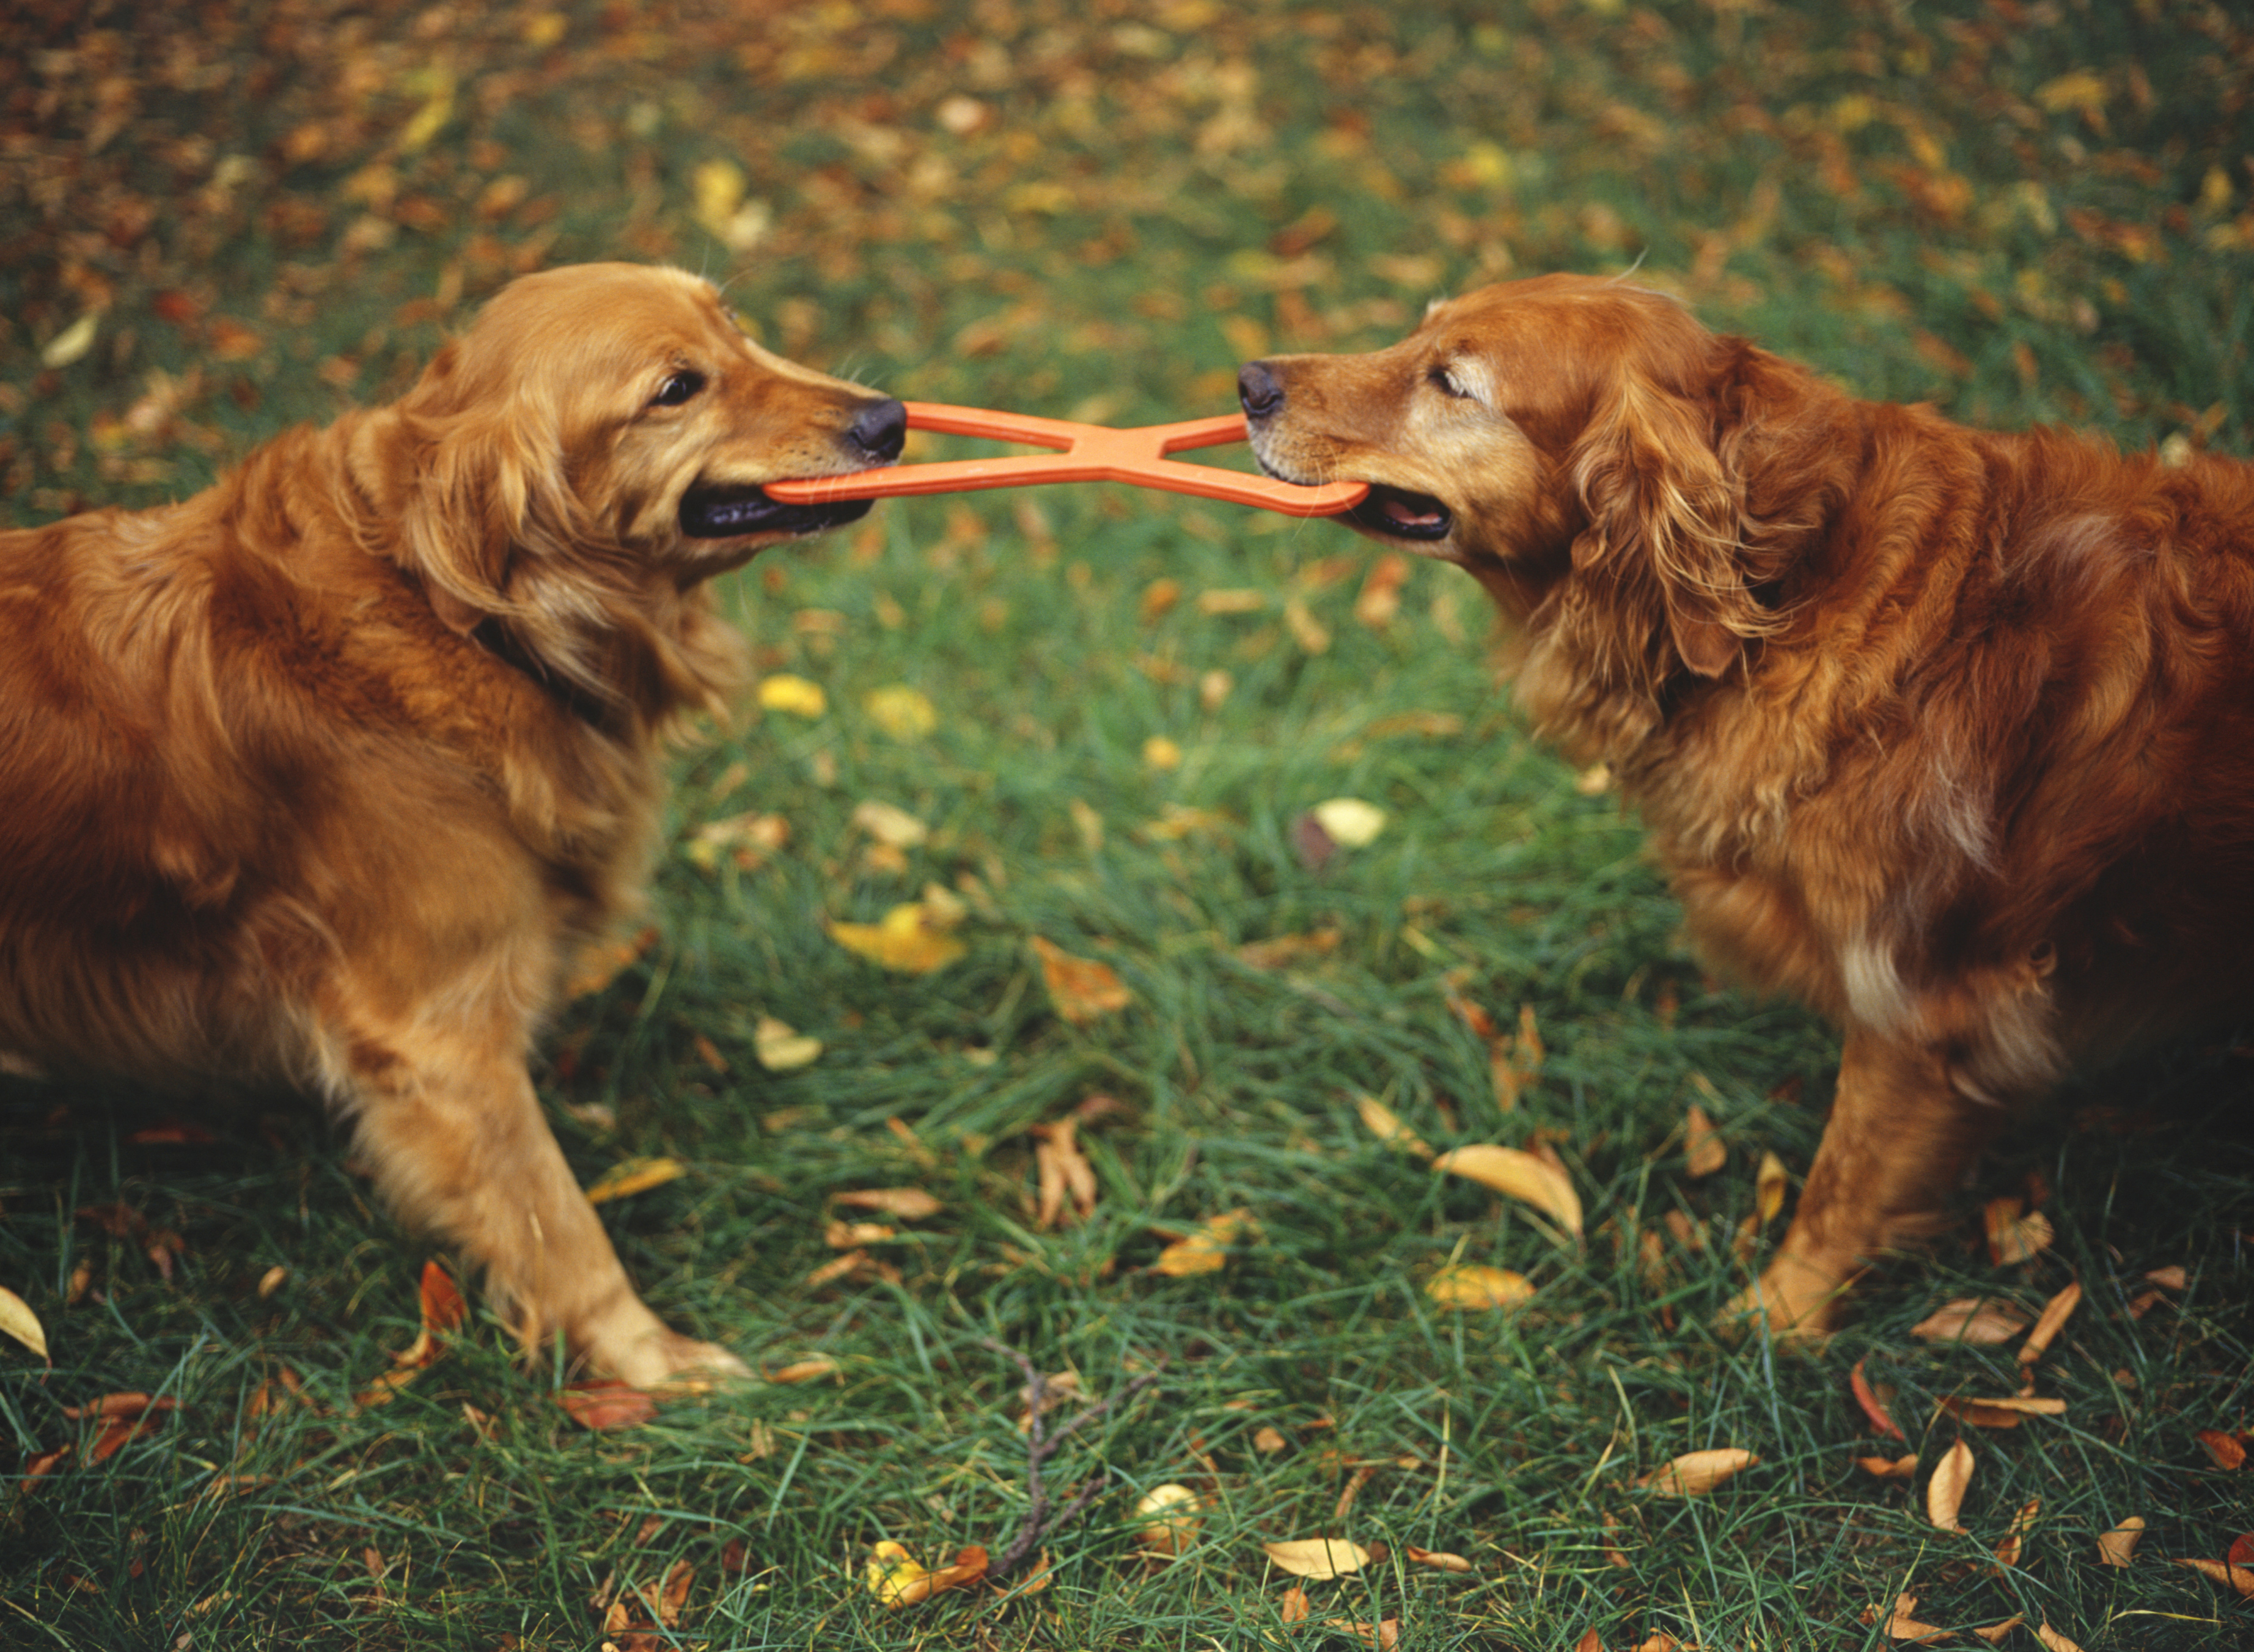 Two Dogs Fighting Over Toy